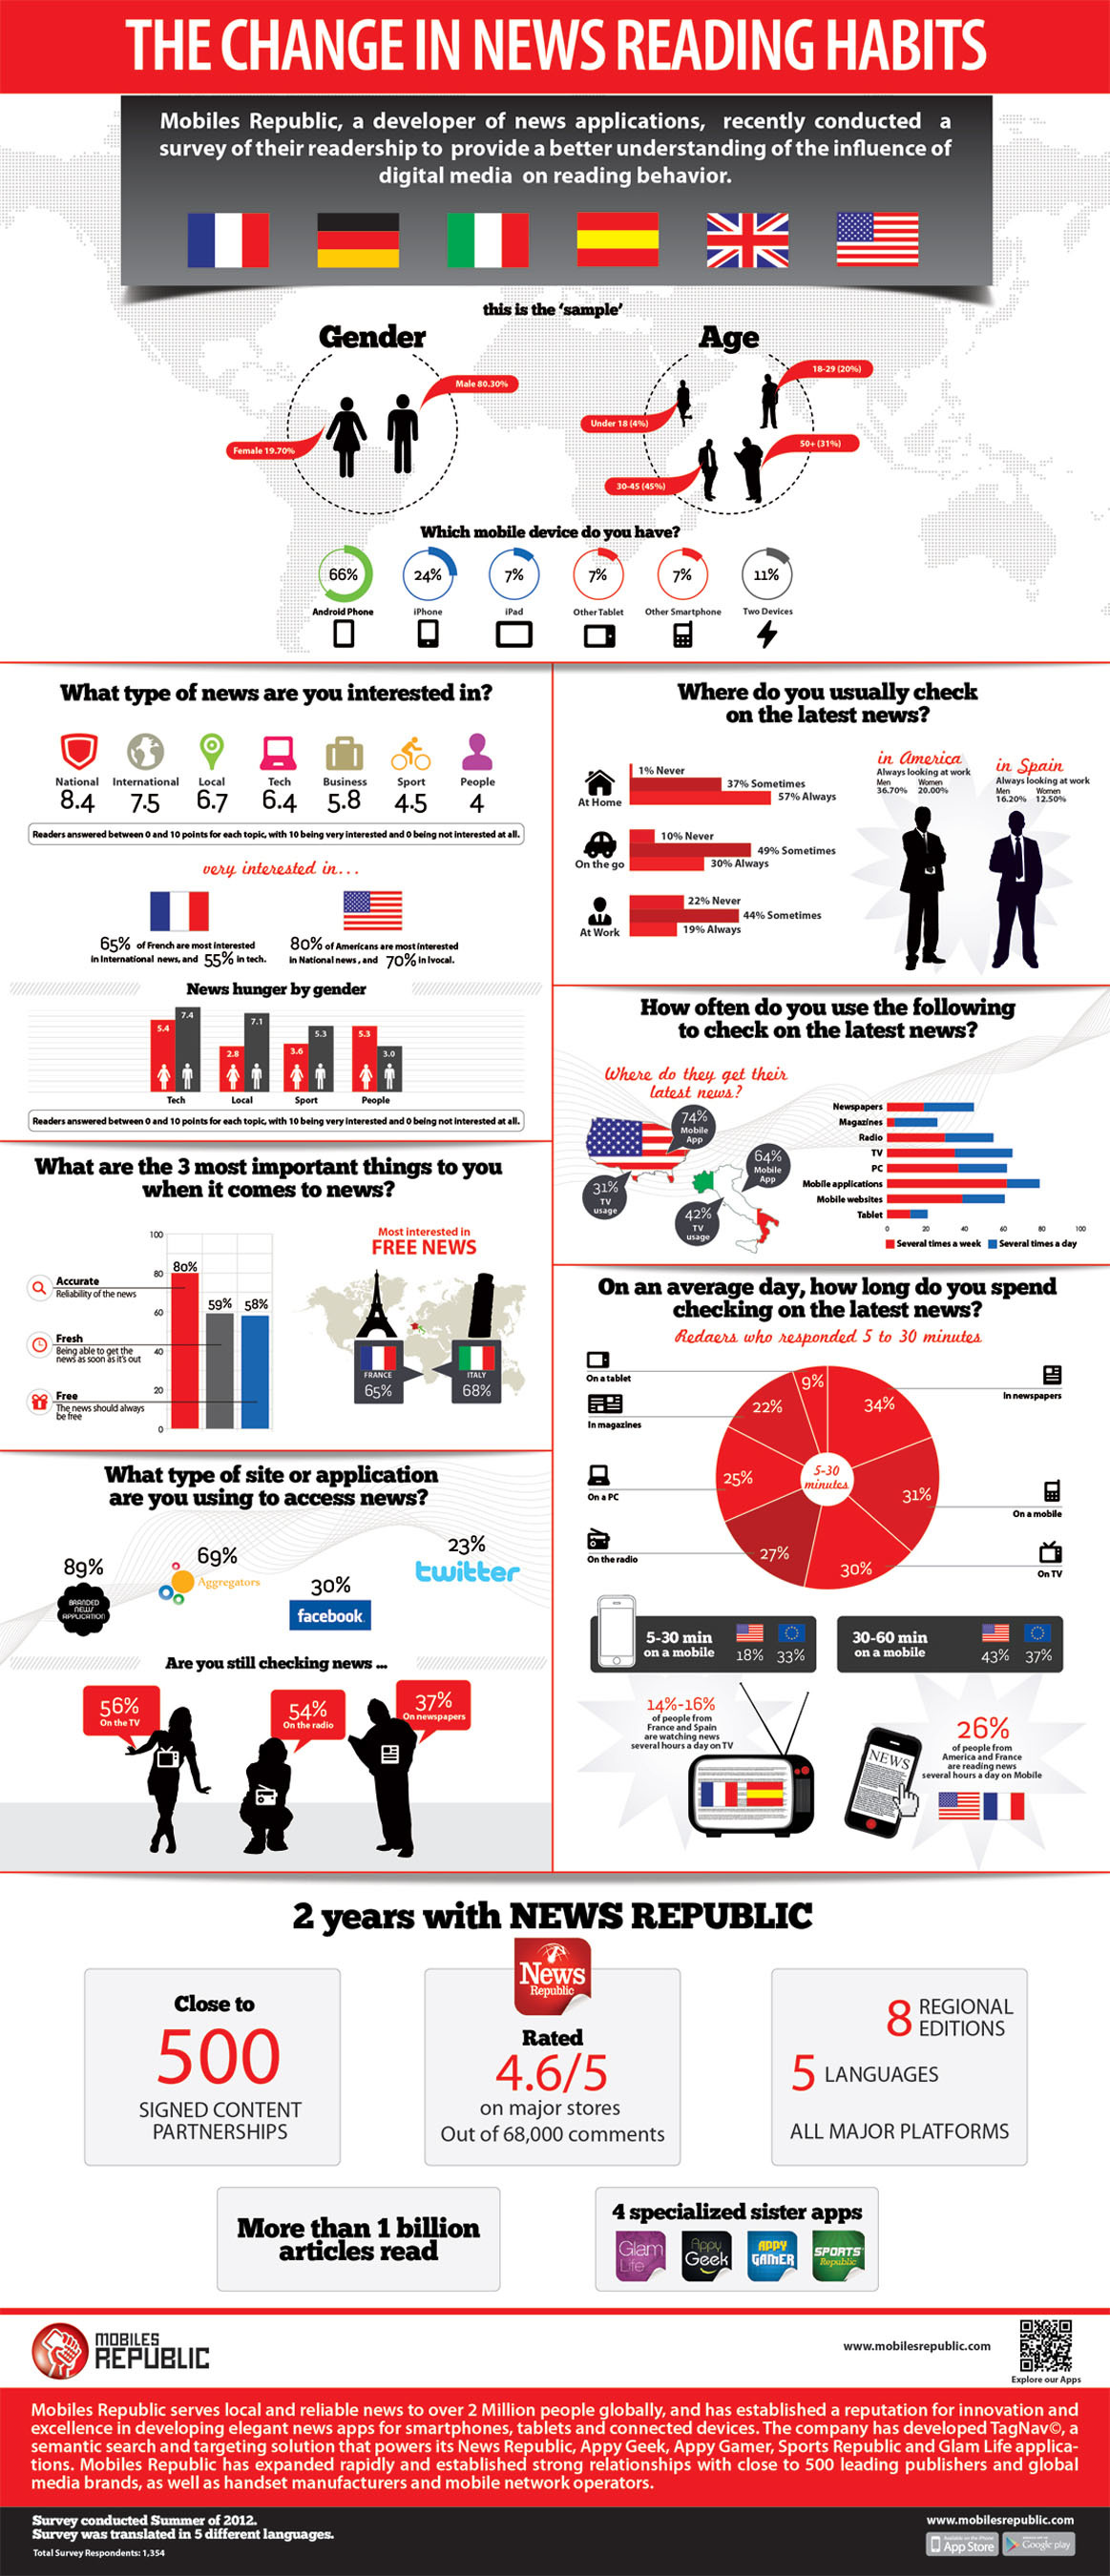 Mobiles Republic App Usage Infographic.  (PRNewsFoto/Mobiles Republic)